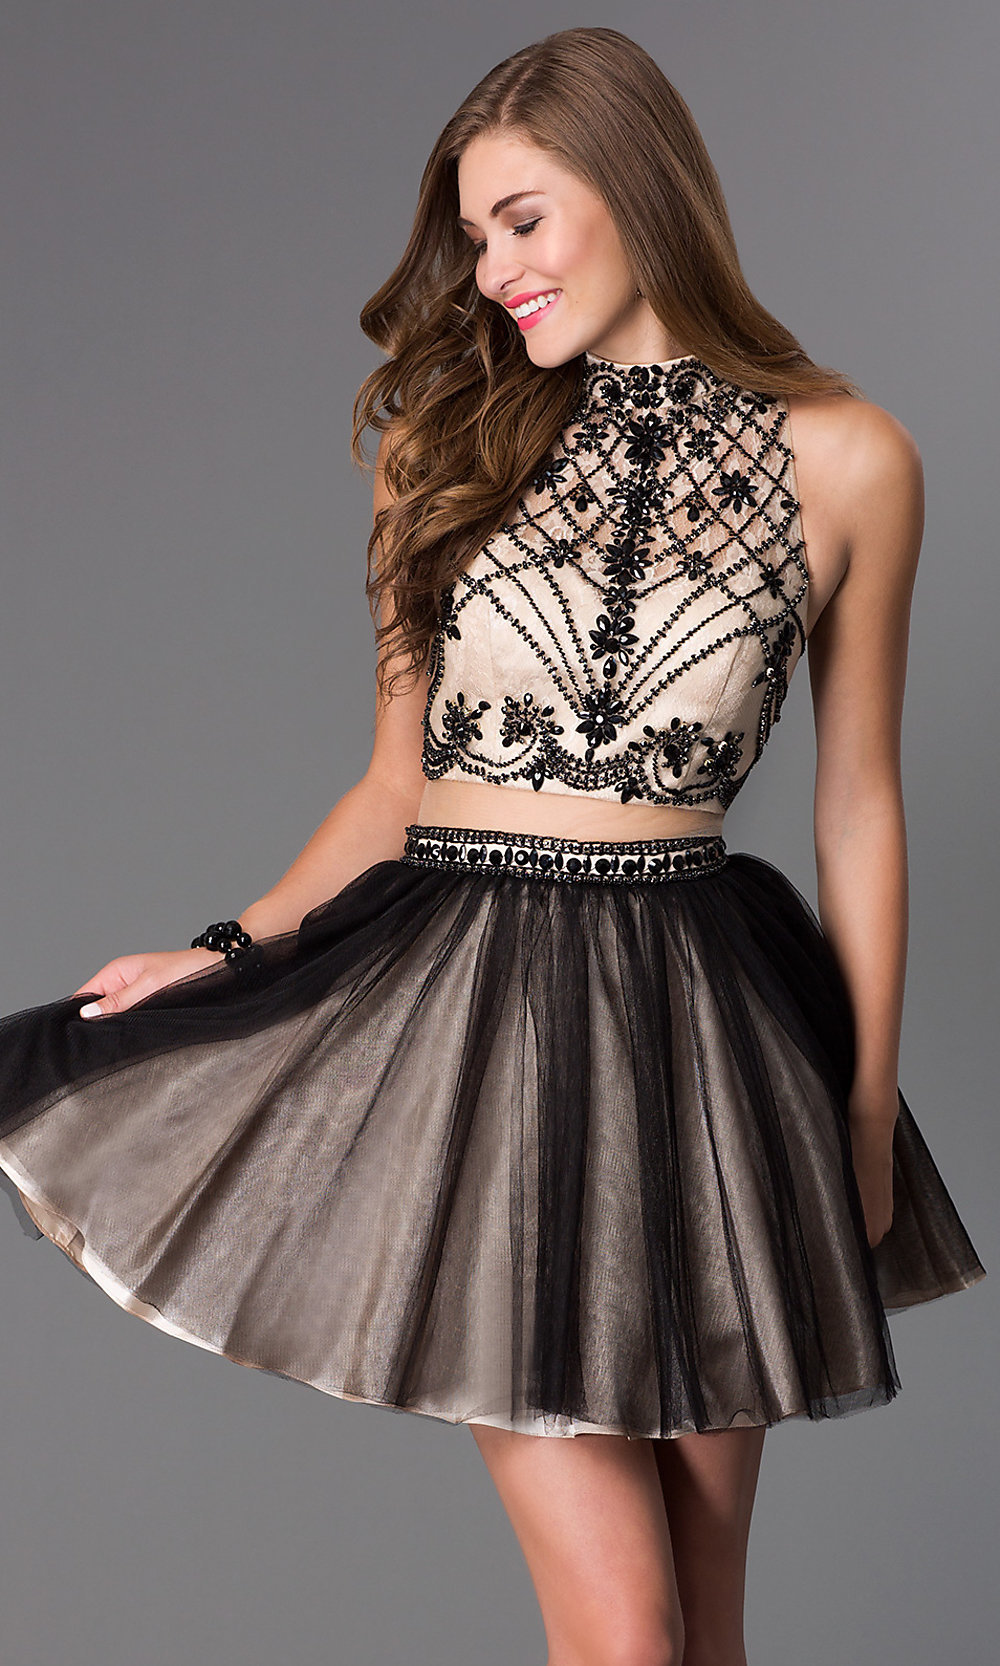 ddbc488af90 Tap to expand · Image of black mock two-piece short prom dress ...